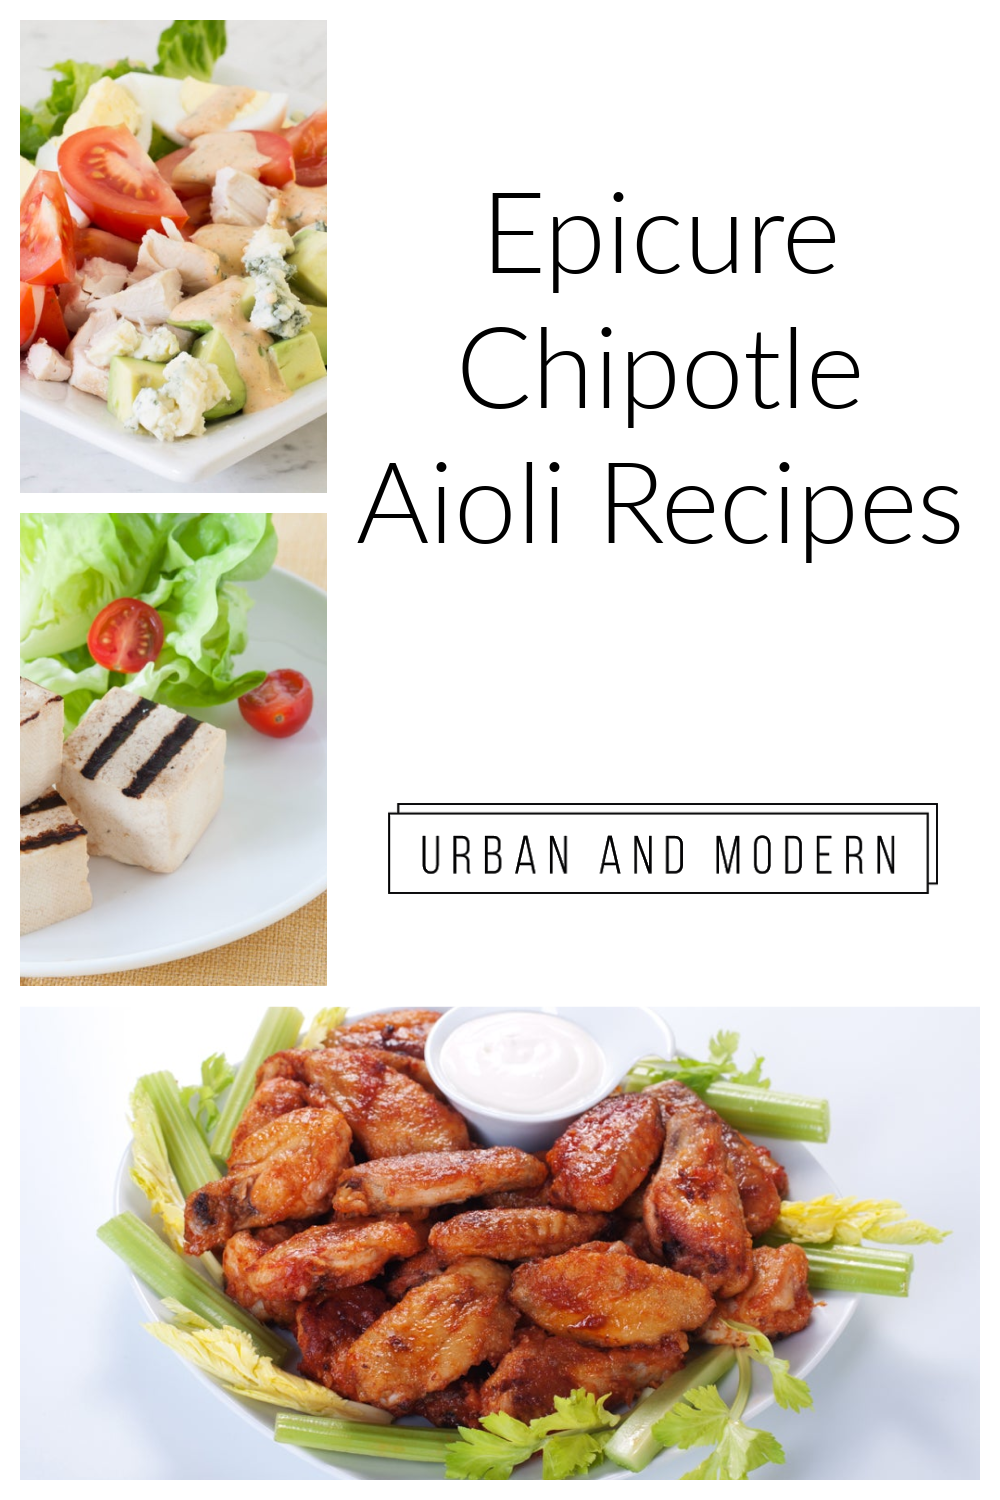 Epicure Chipotle Recipes